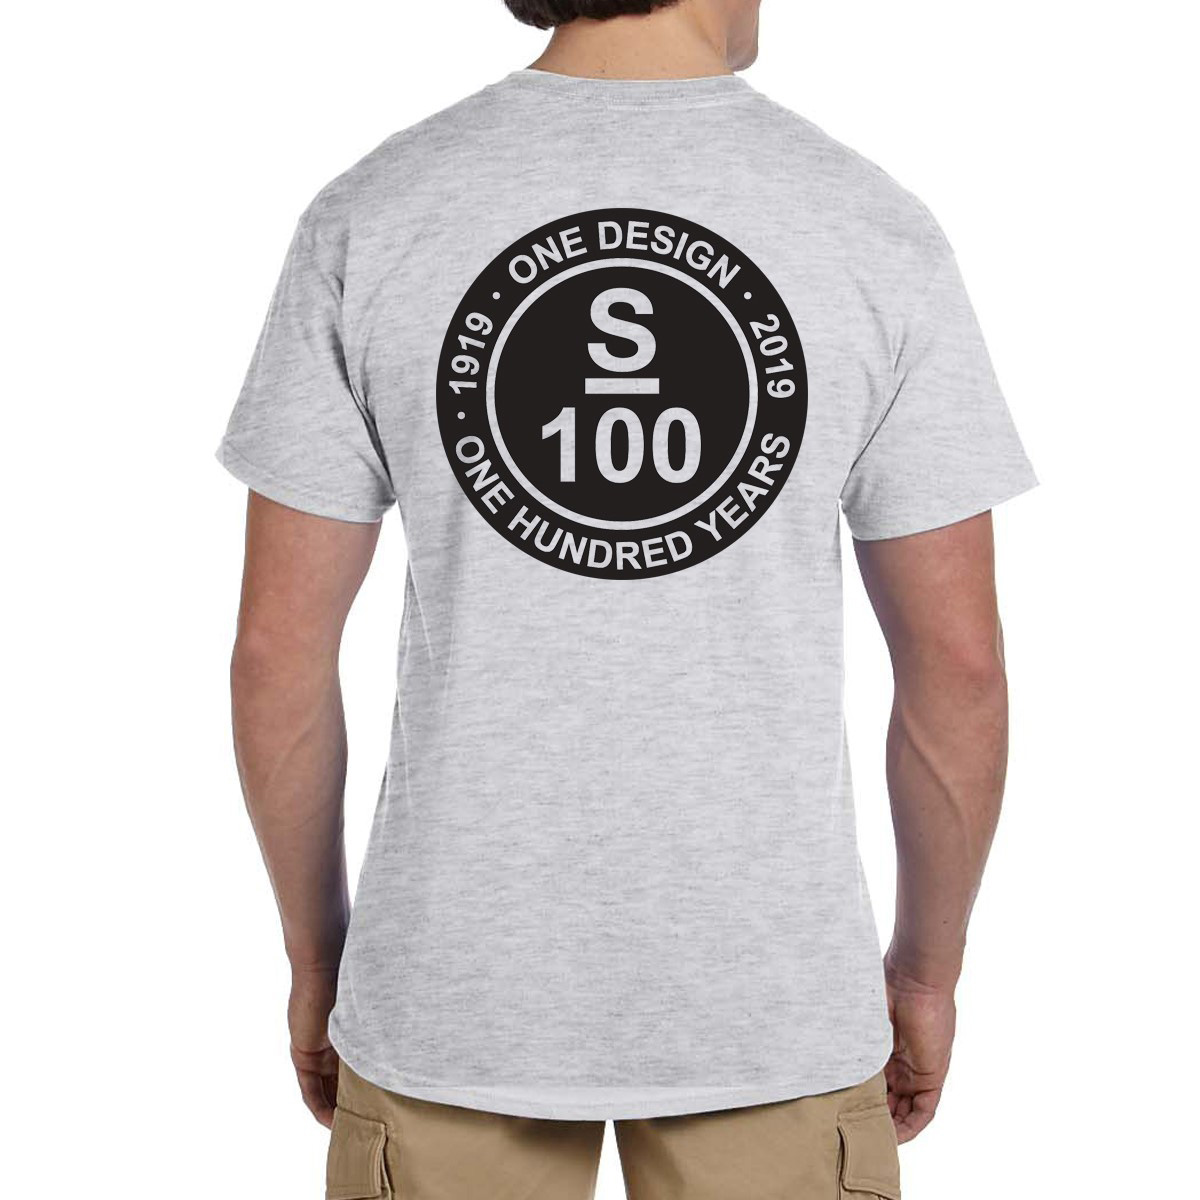 S Class Centennial 100 - Men's Cotton Tee Shirt (SCLC101)